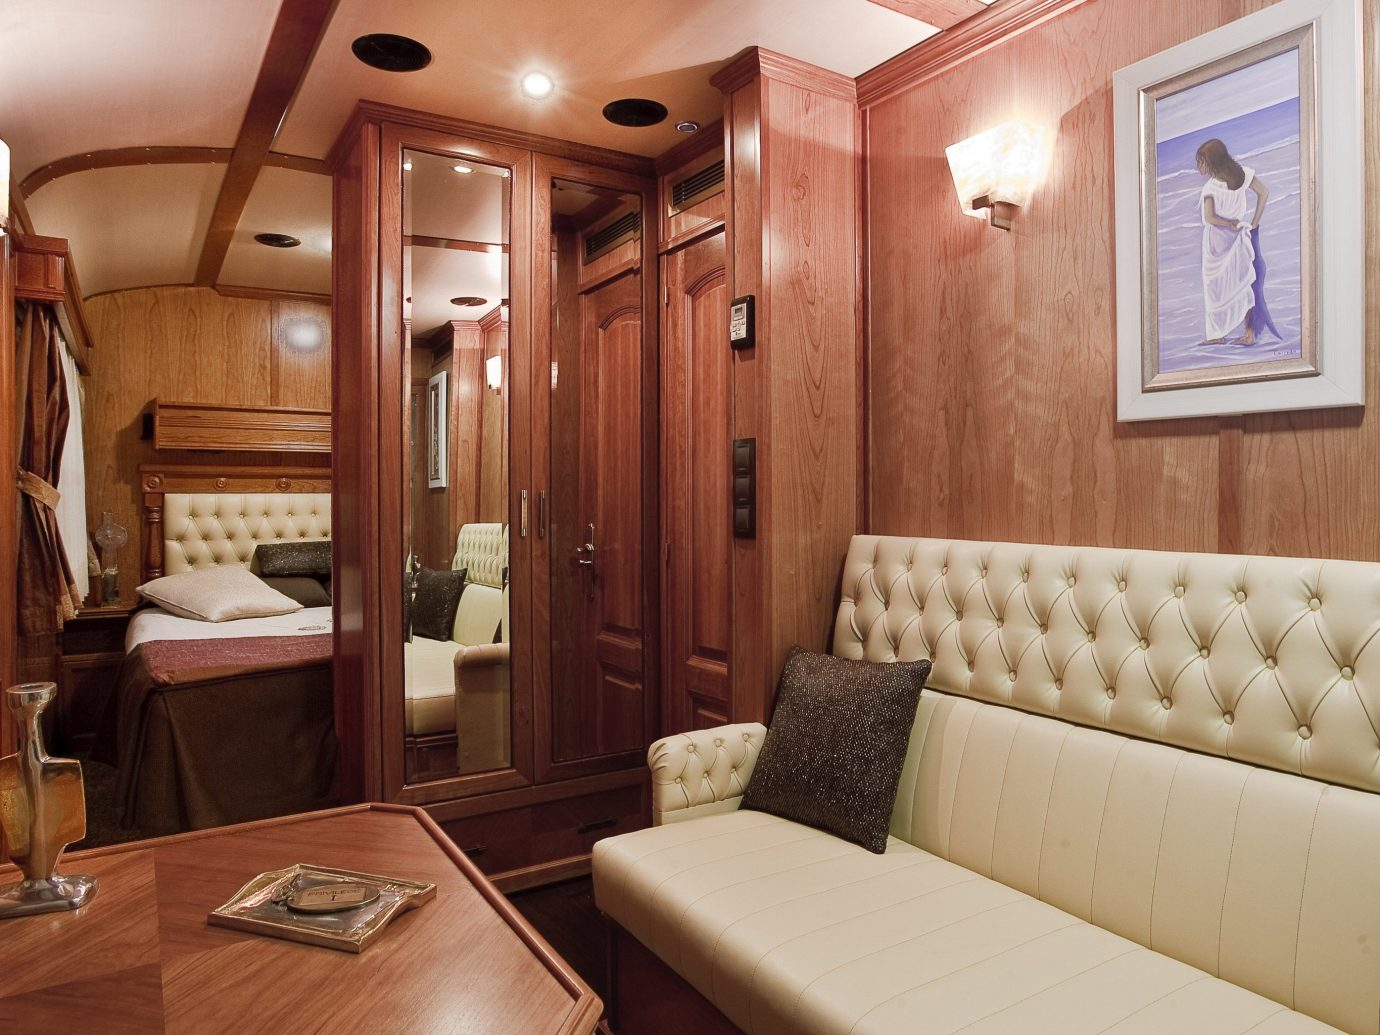 Trip Ideas indoor wall room property vehicle yacht Suite interior design estate cottage wood furniture